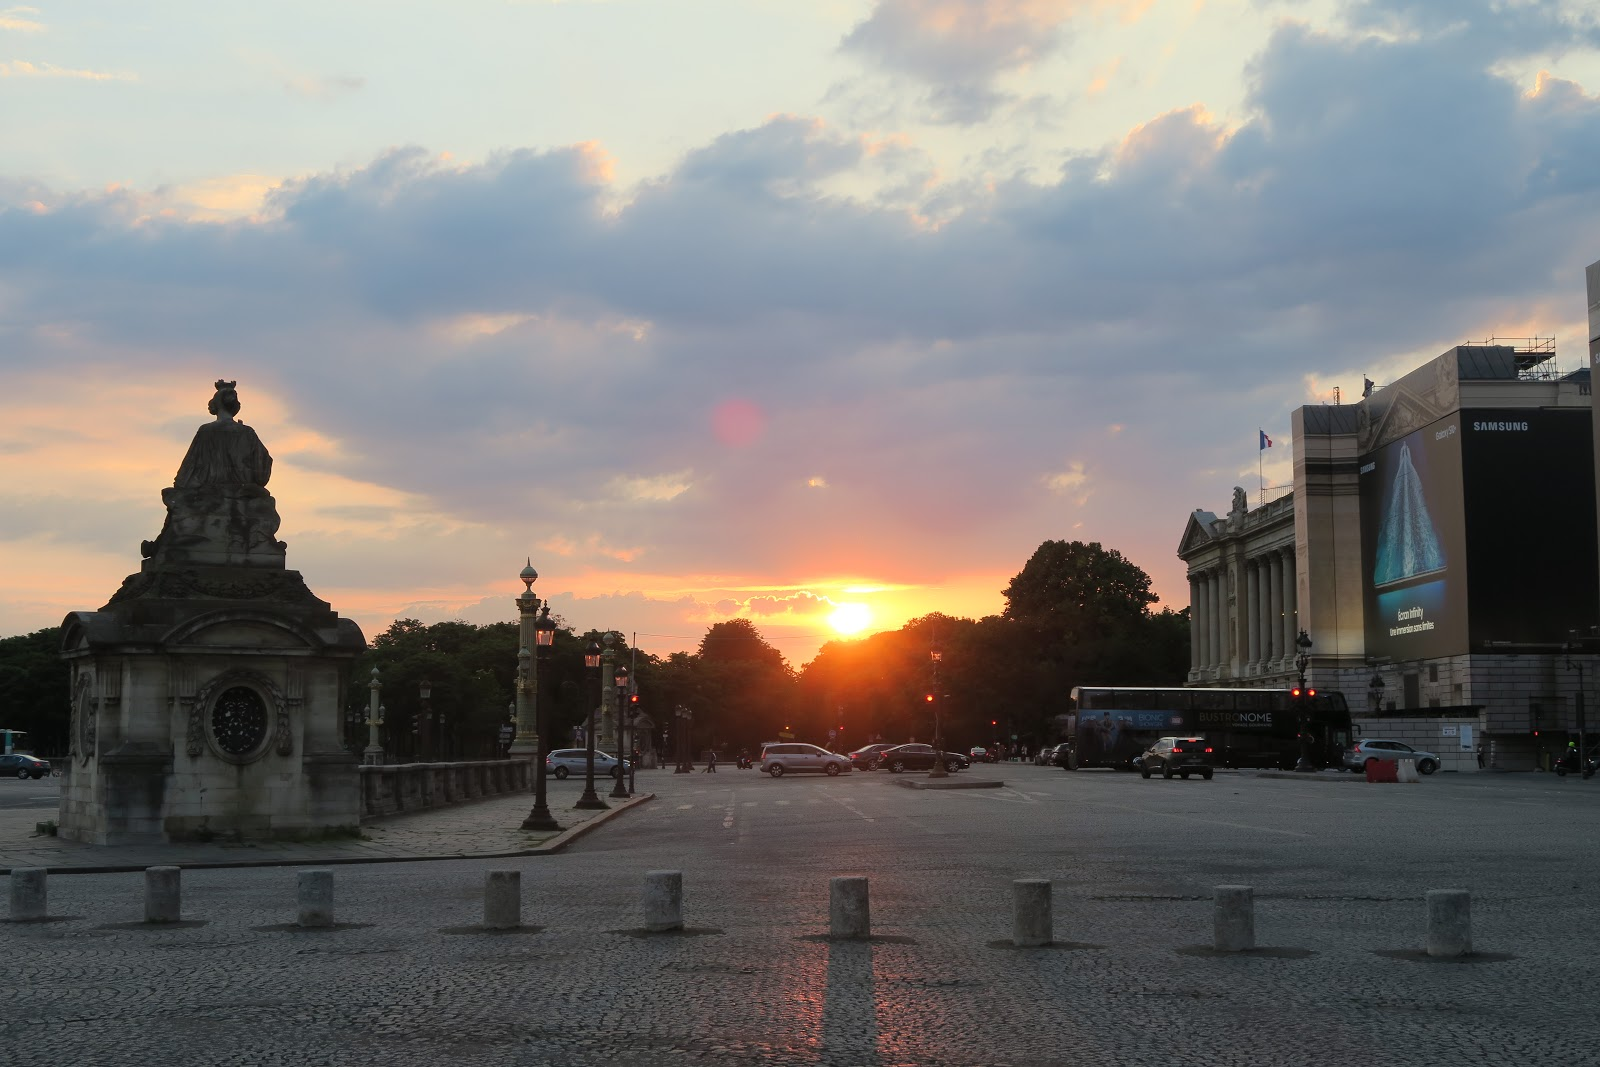 Sunset in Paris from our trip